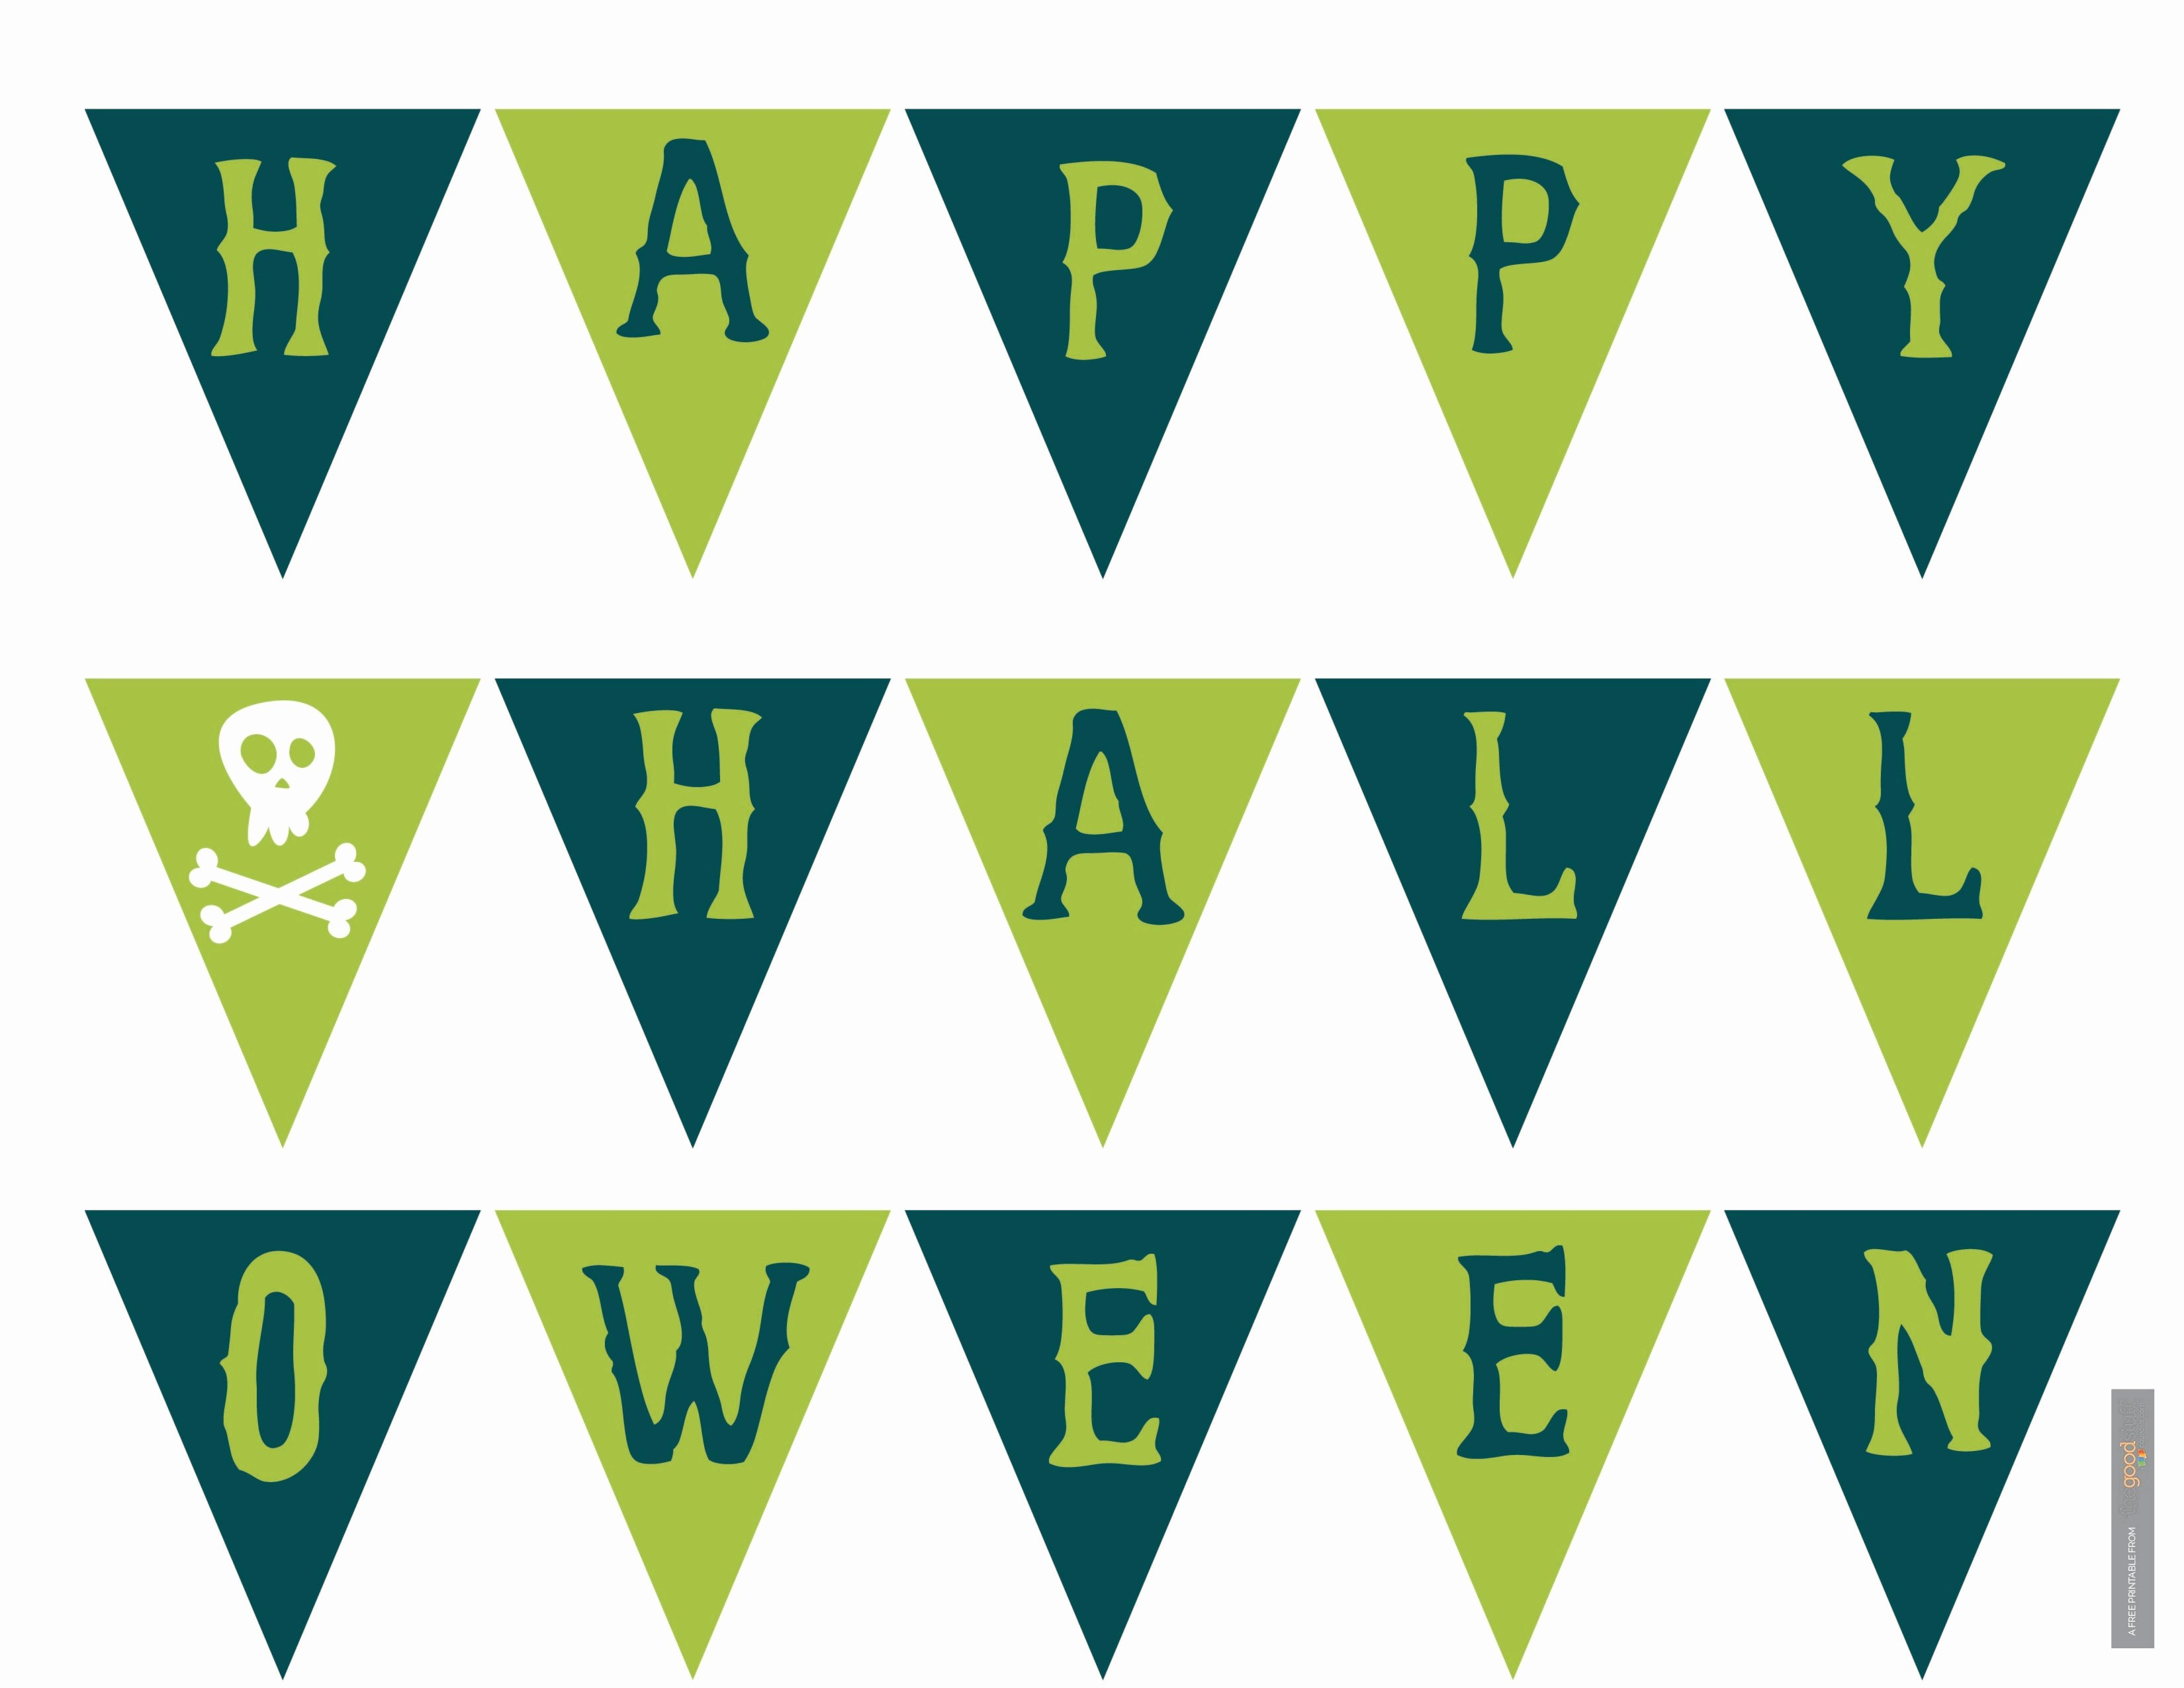 Banner Cut Out Luxury 6 Free Halloween Printables for Your Halloween Party